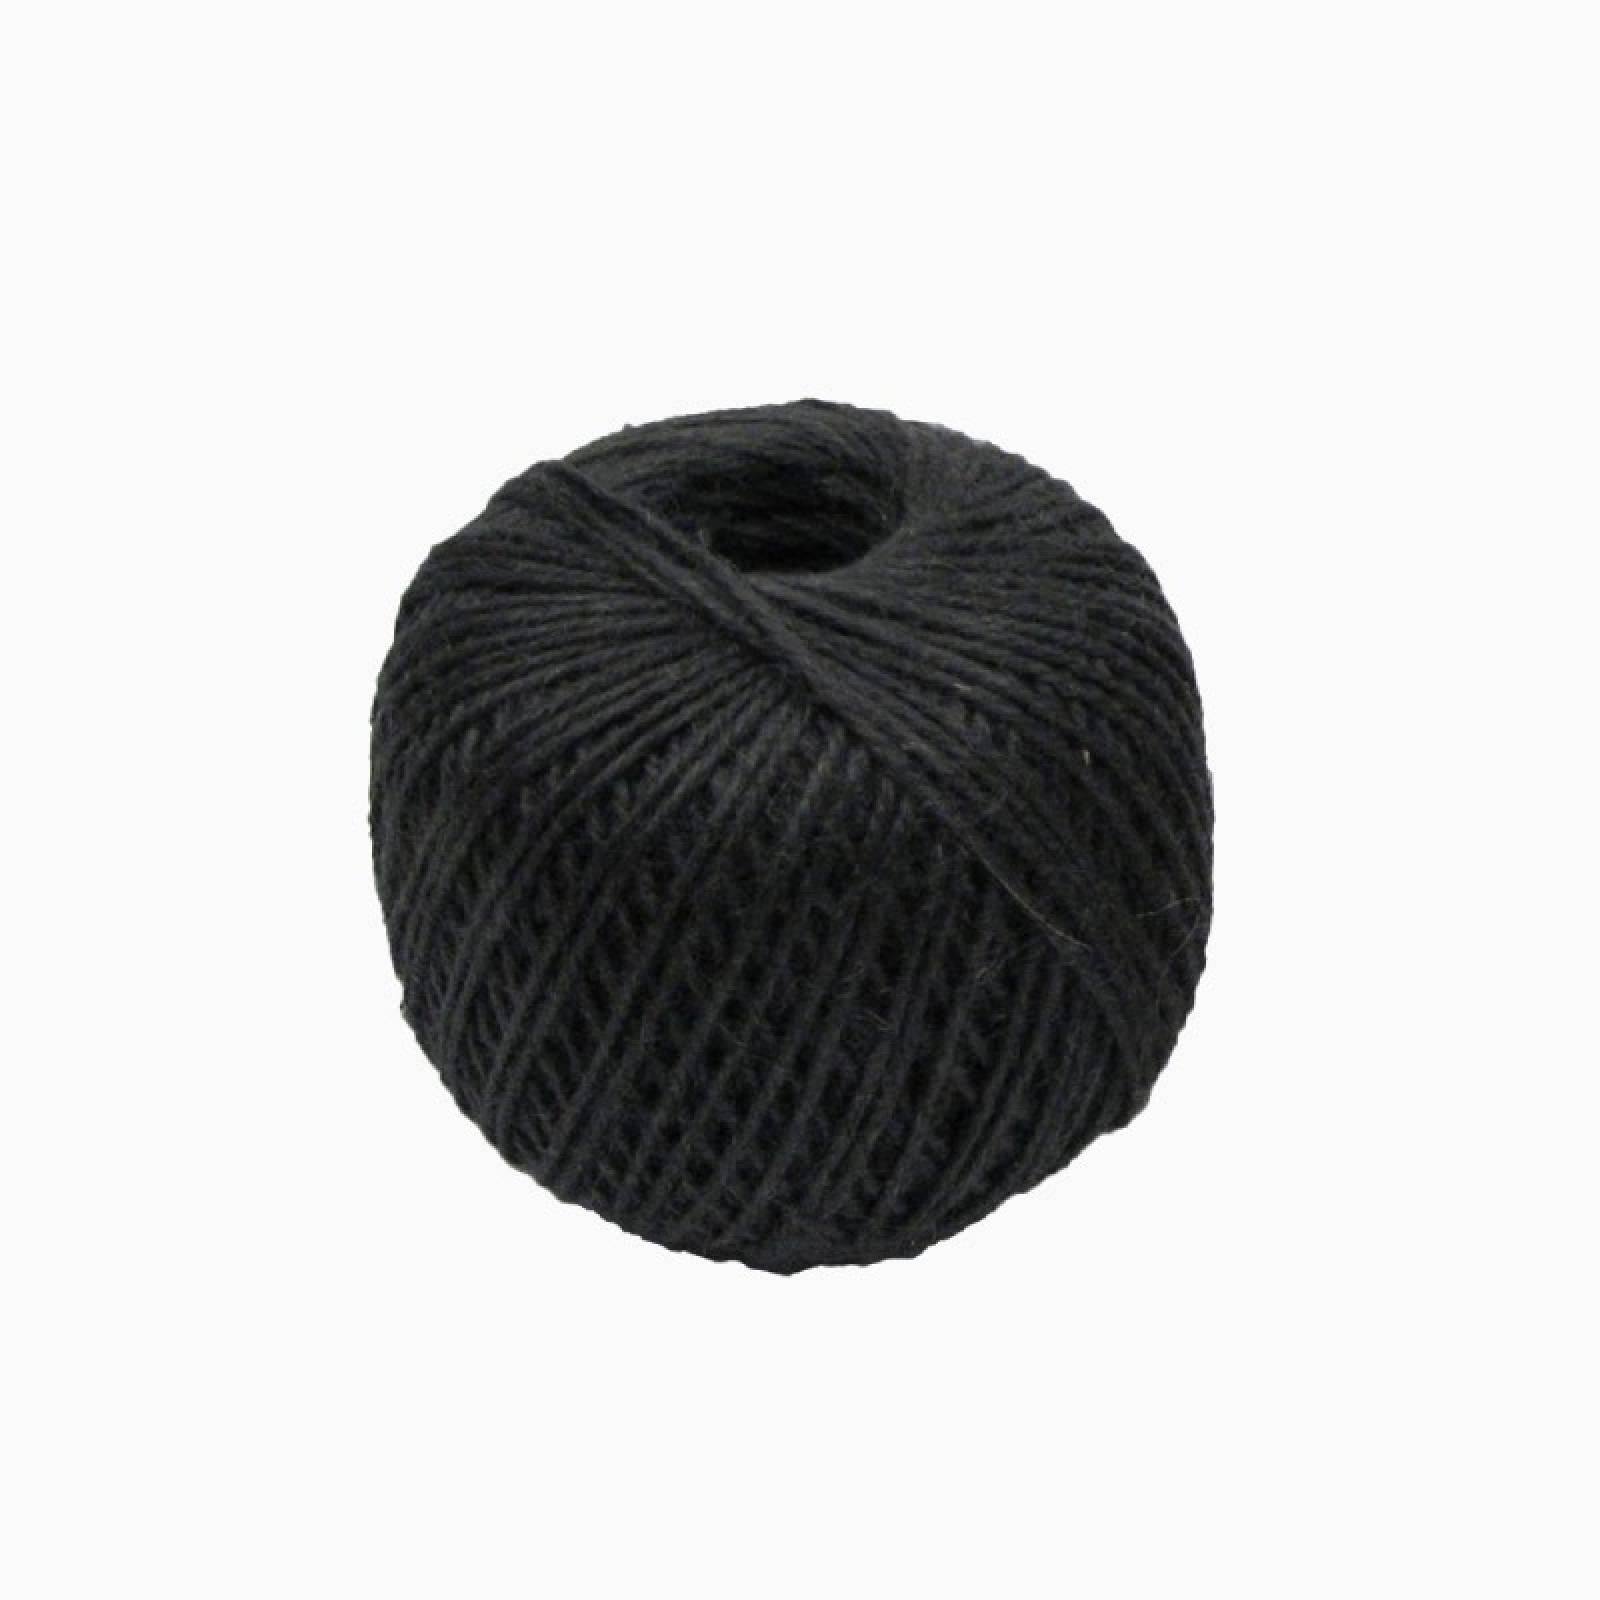 Jute Twine Ball In Black 140m thumbnails